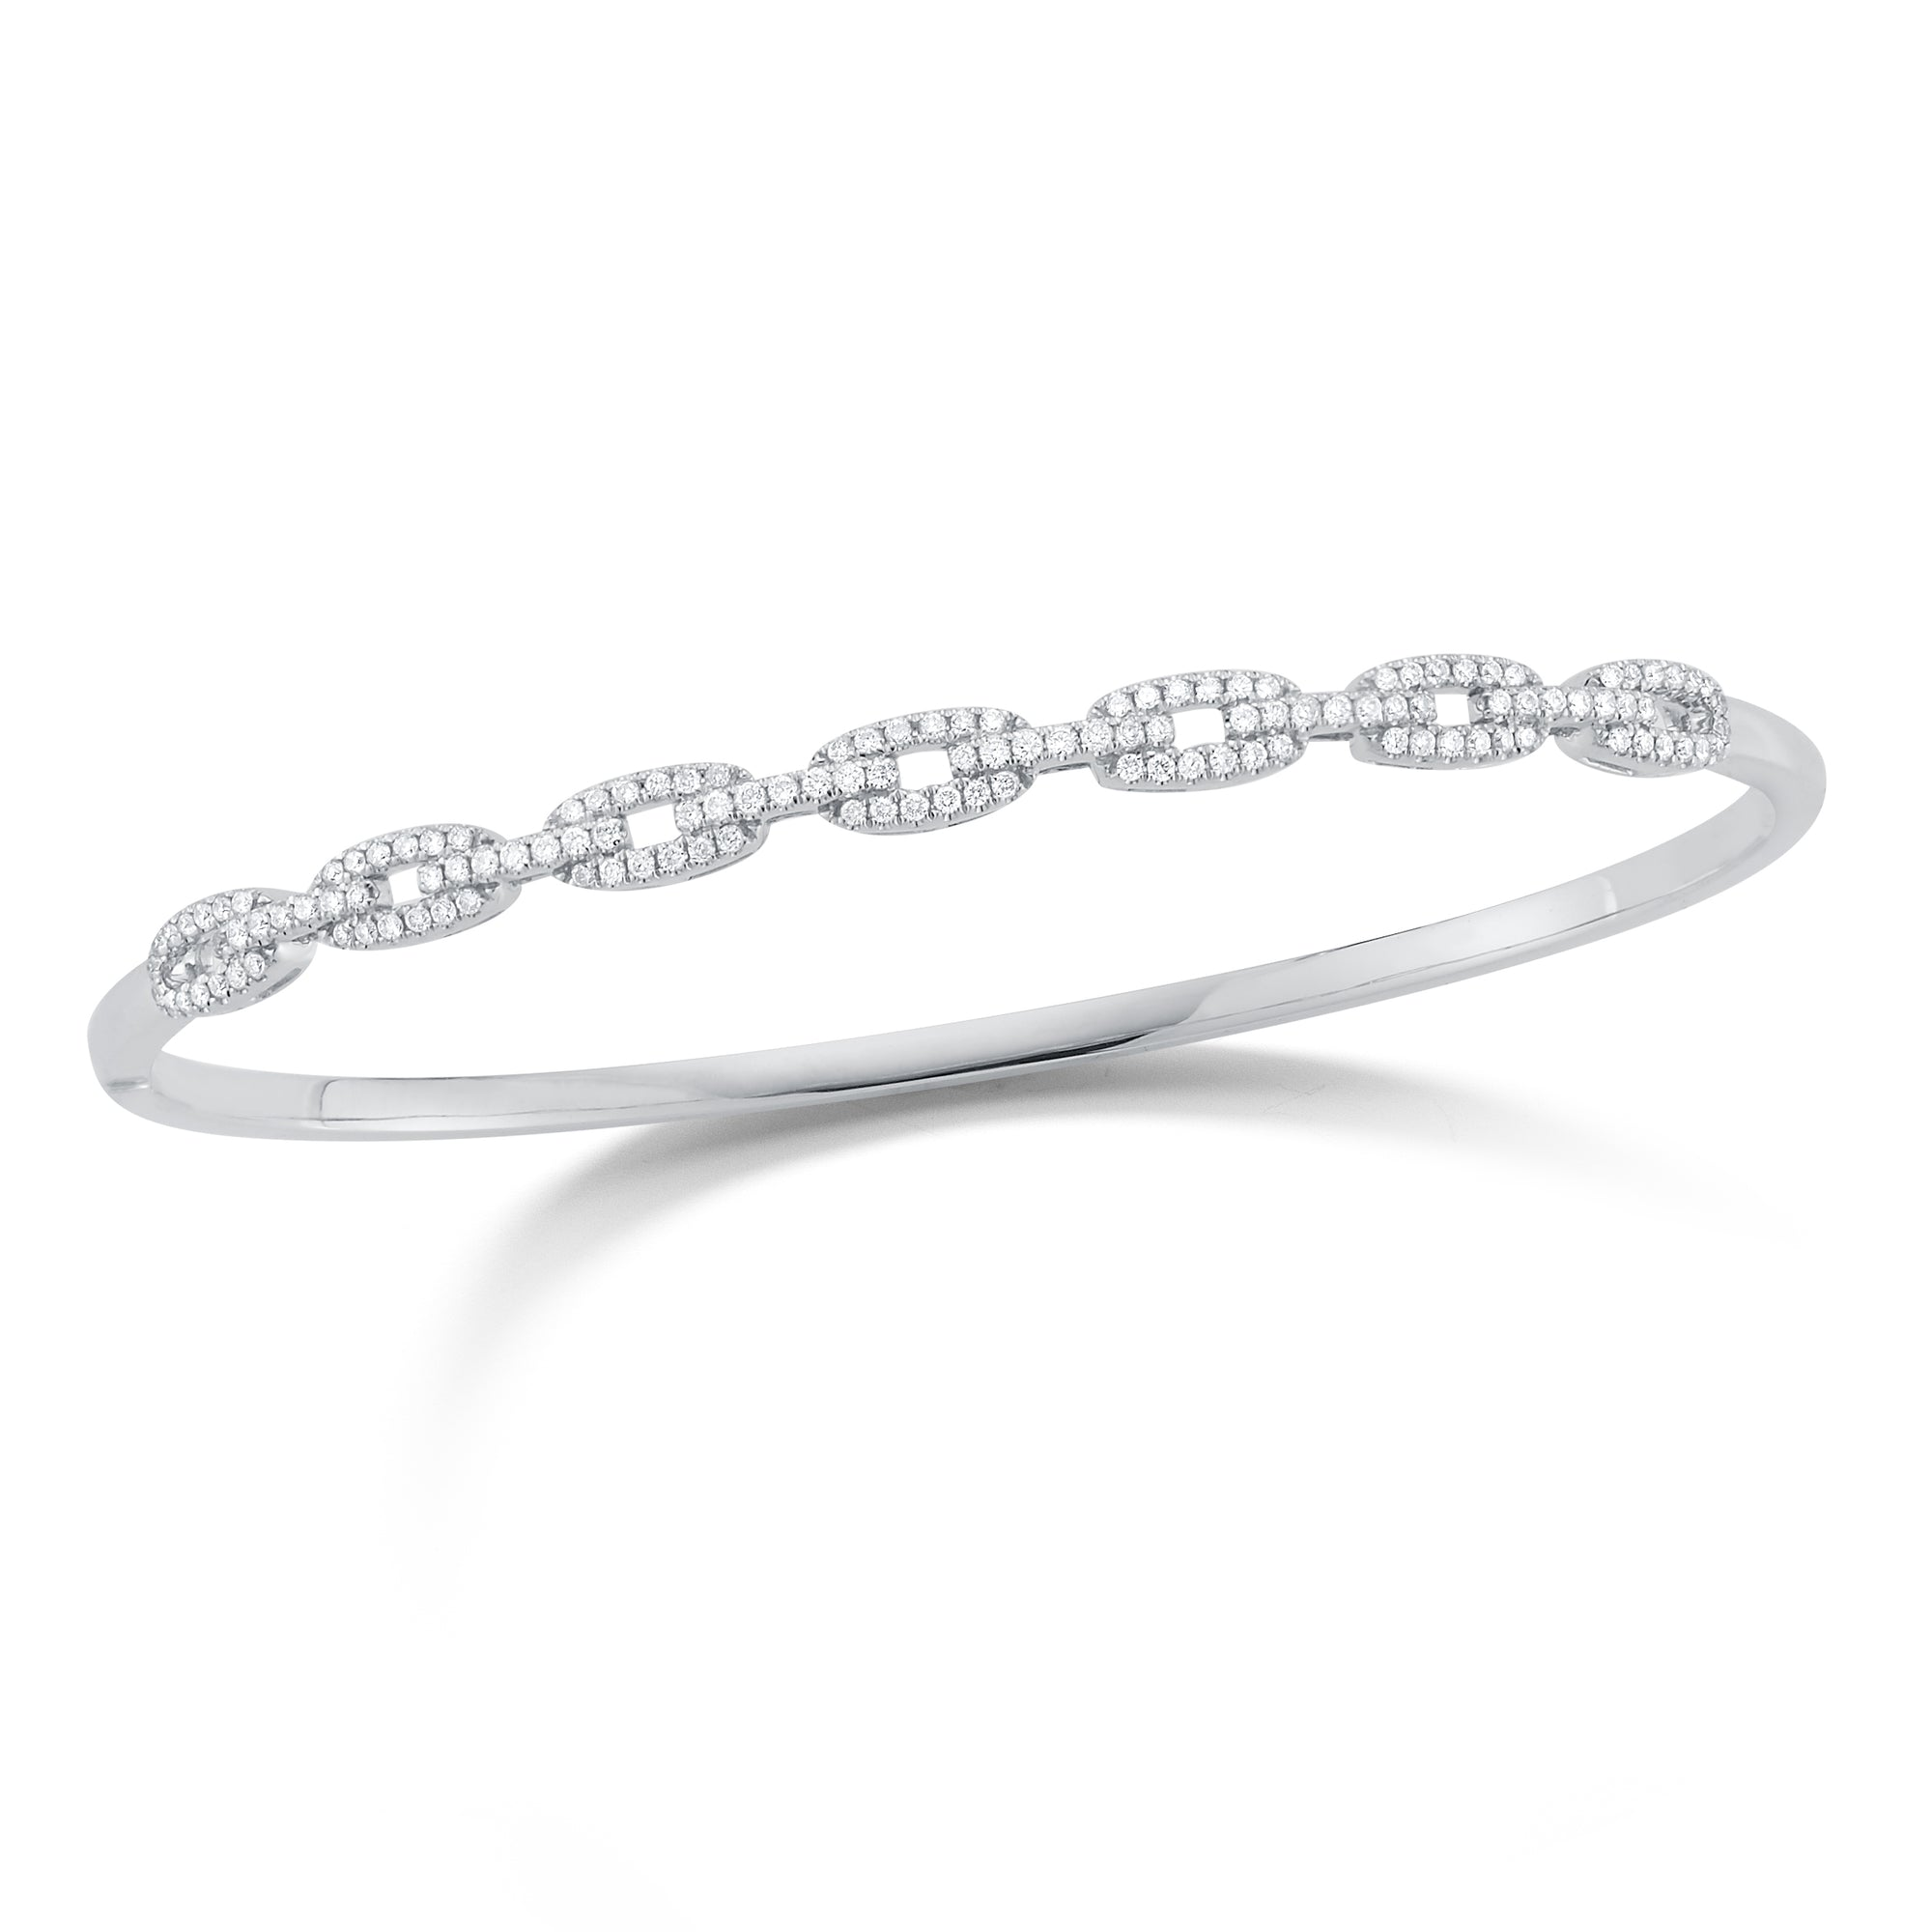 Diamond Chain Link Bangle Bracelet